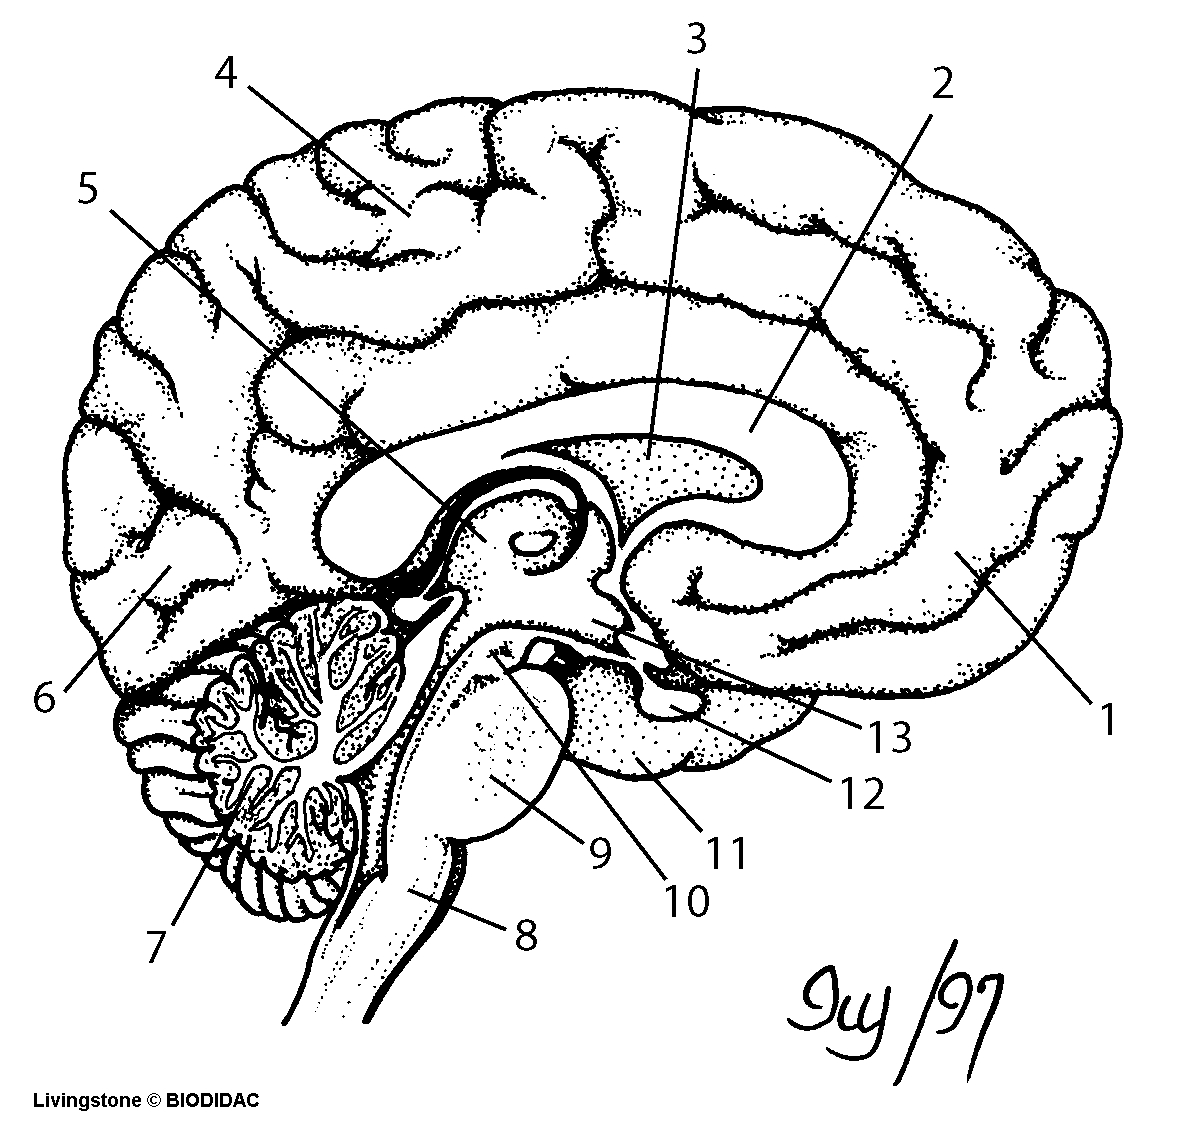 hight resolution of 1197x1135 brain cross section diagram unlabeled drawn brain unlabelled